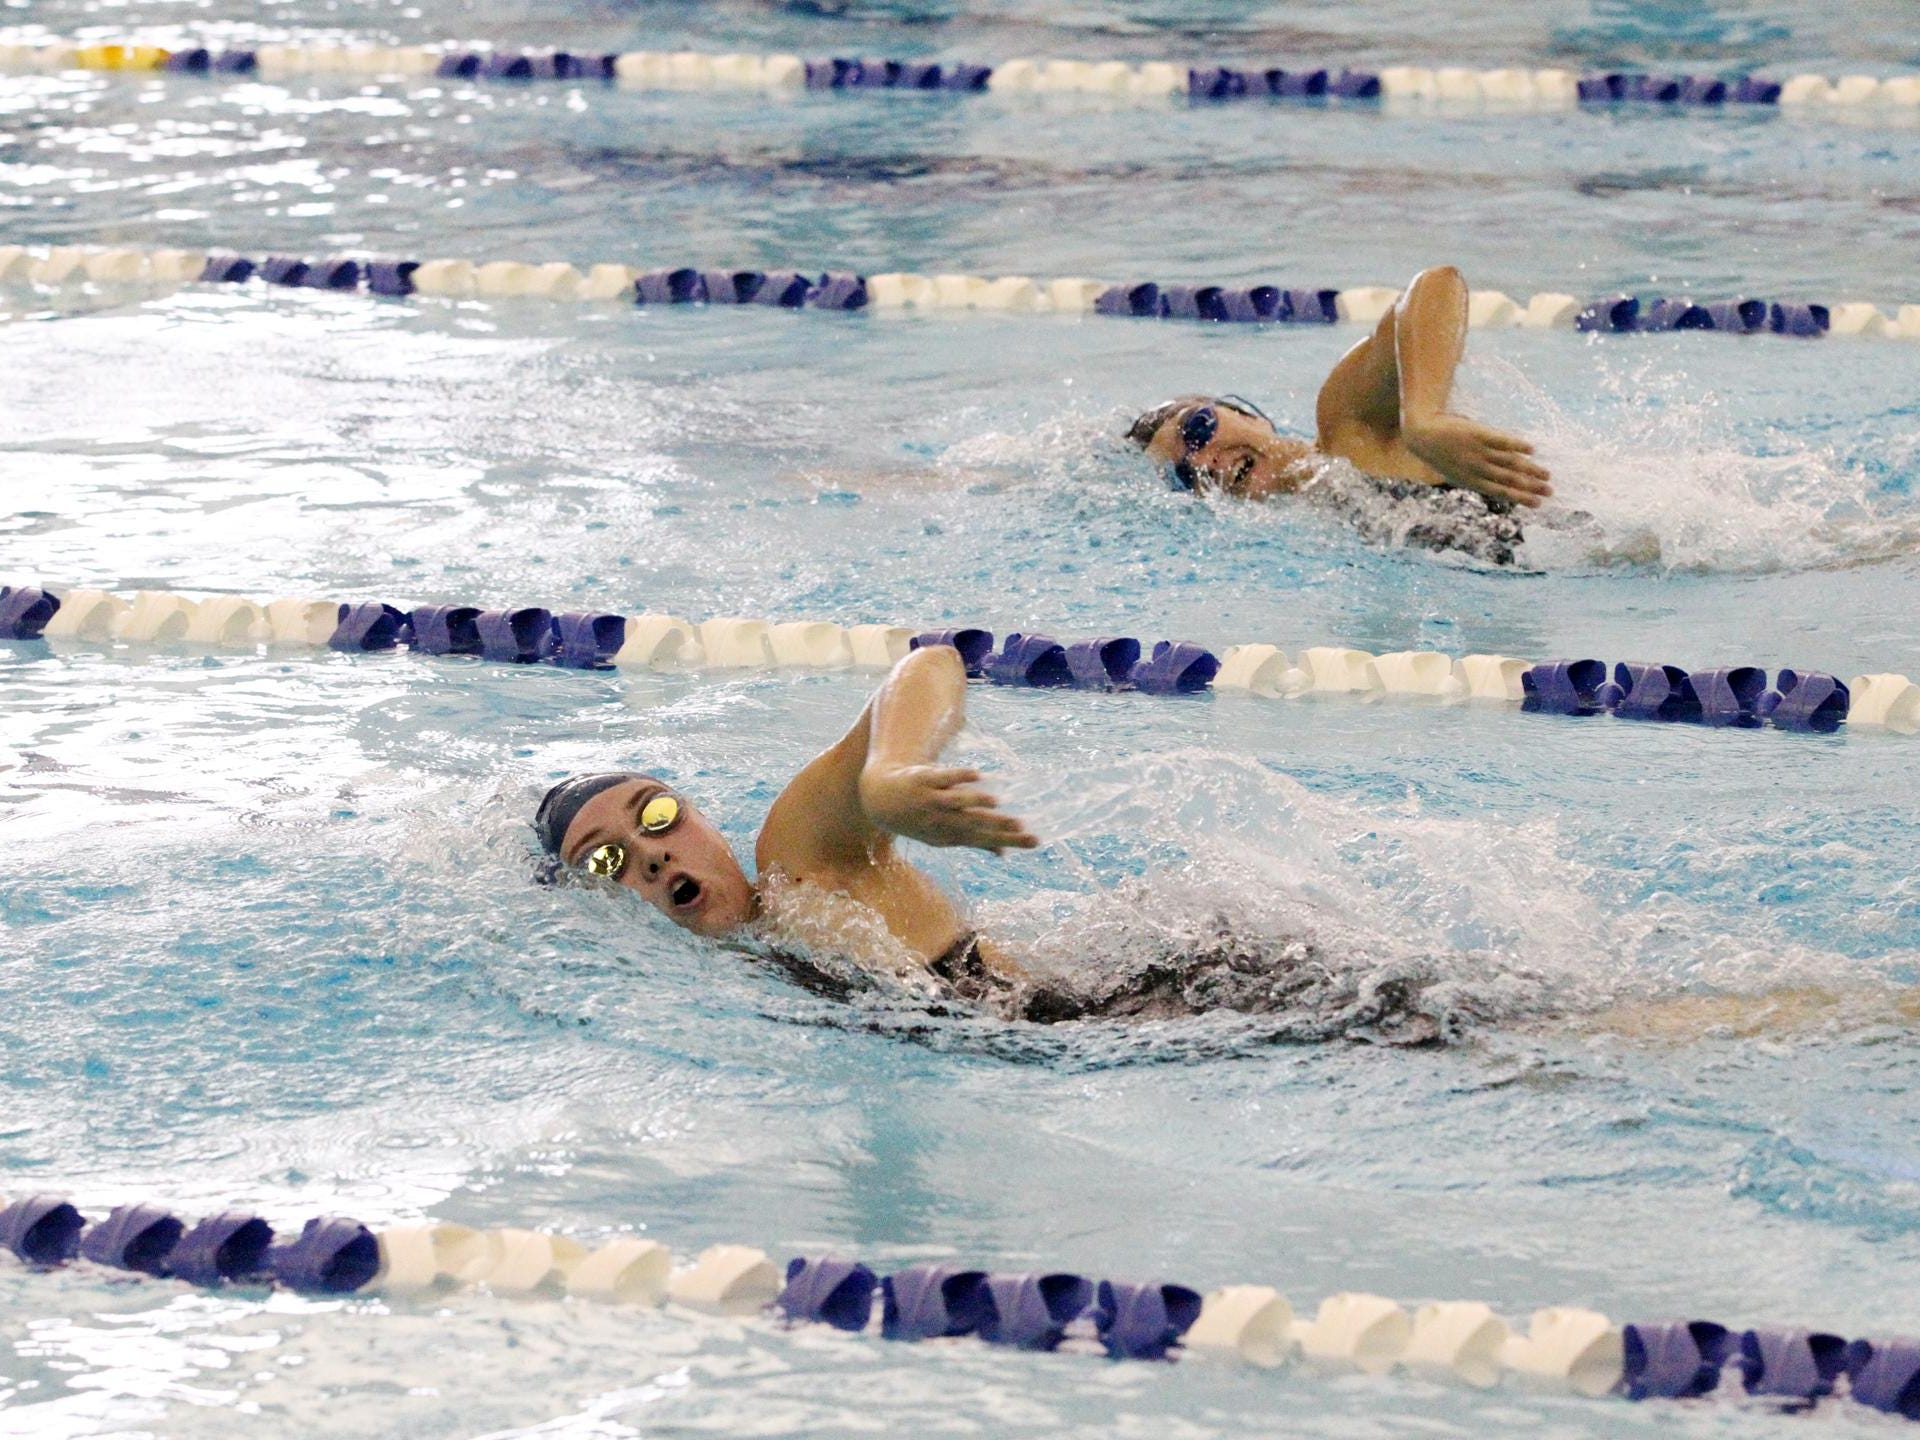 Battle Creek Central swimmer, Morgan Mowry, beats Lakeview swimmer, Alexandra Quada in the 200 Yard Freestyle event at The All-City Swim Meet Saturday morning